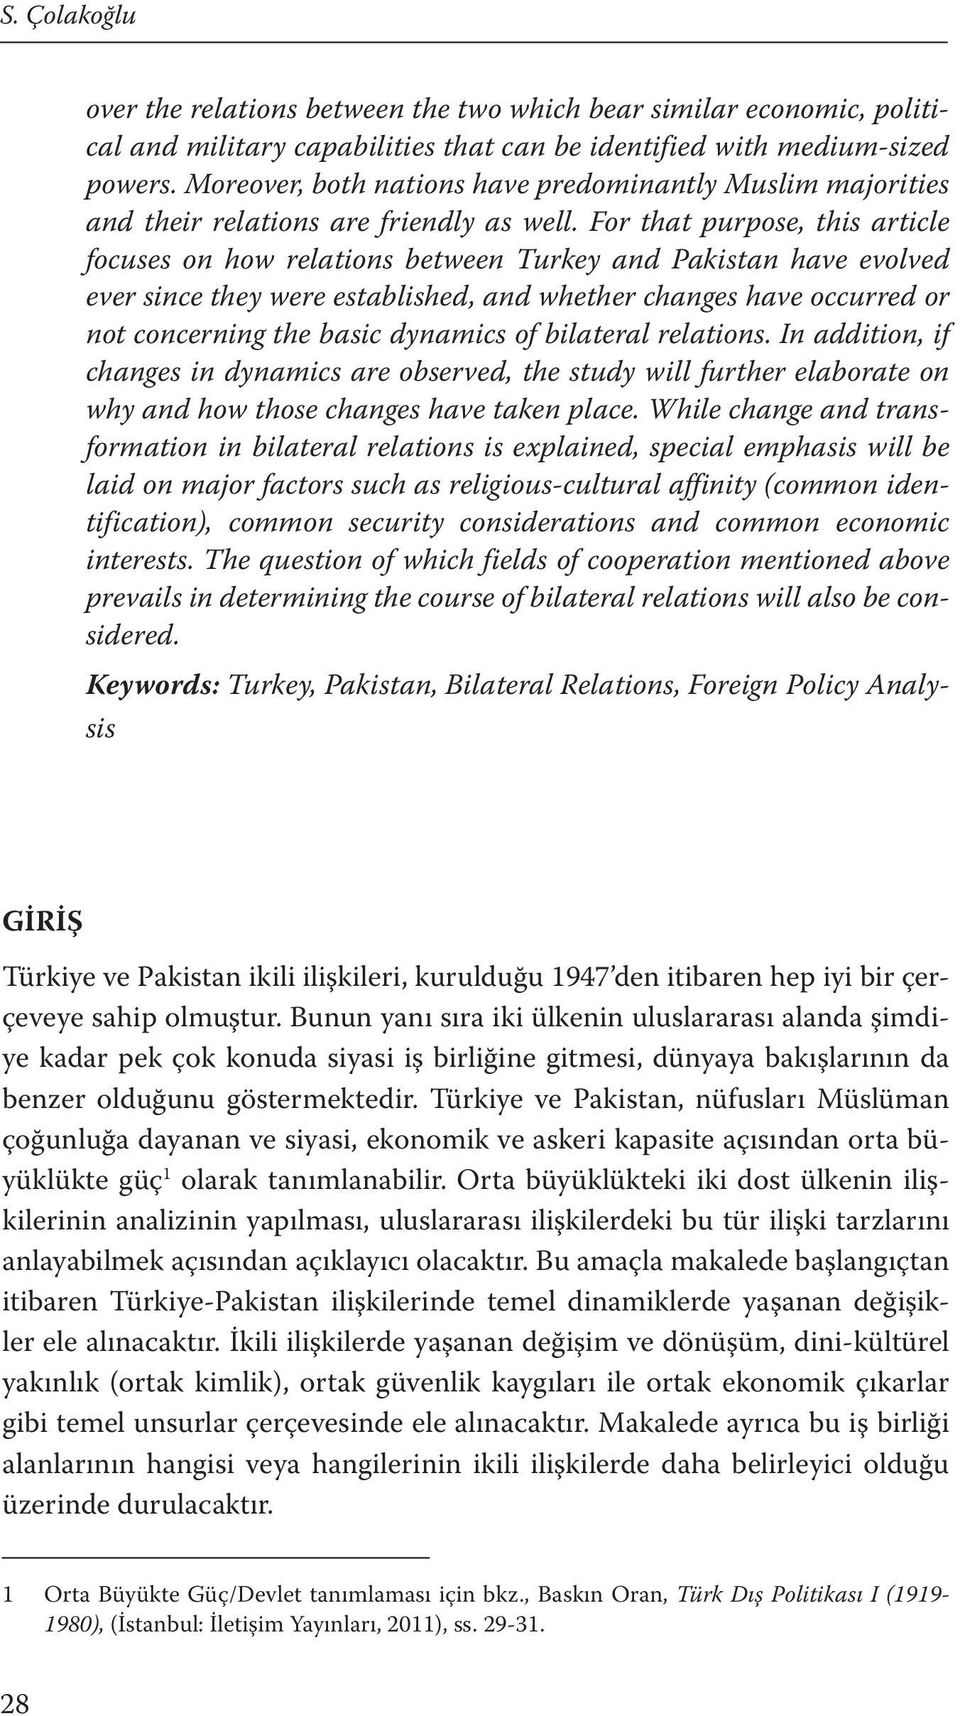 For that purpose, this article focuses on how relations between Turkey and Pakistan have evolved ever since they were established, and whether changes have occurred or not concerning the basic